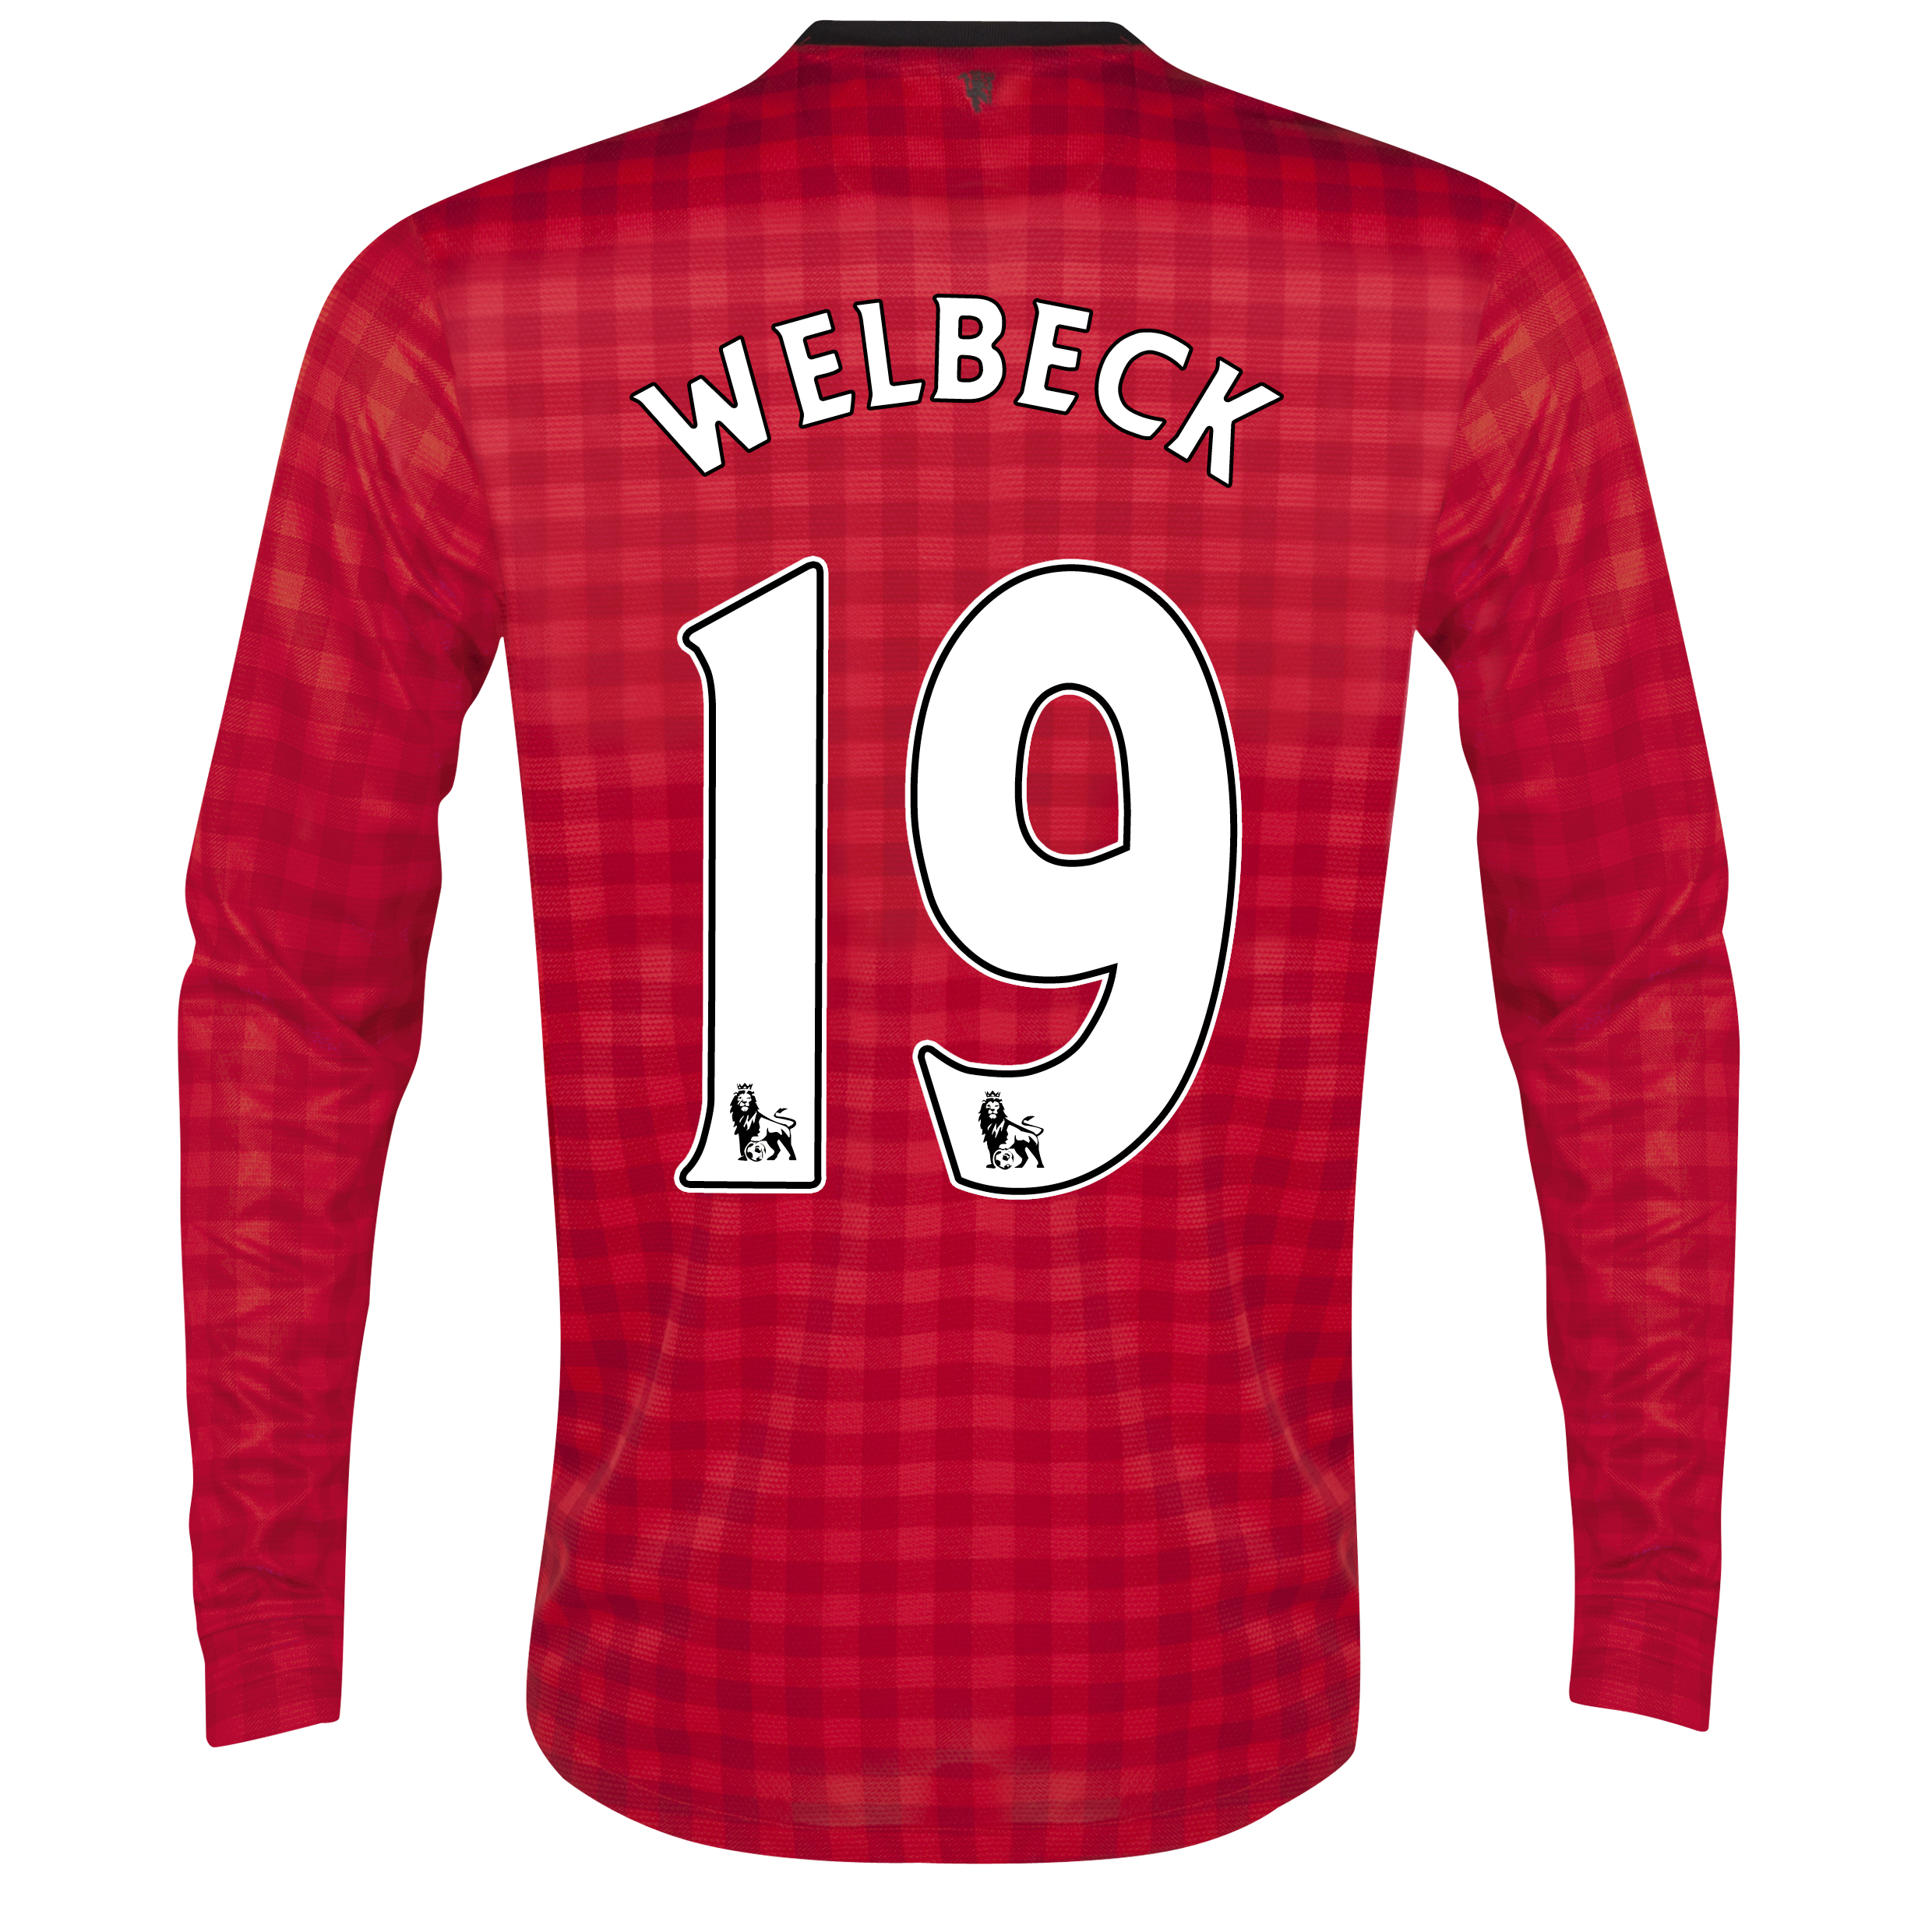 Manchester United Home Shirt 2012/13 - Long Sleeved with Welbeck 19 printing